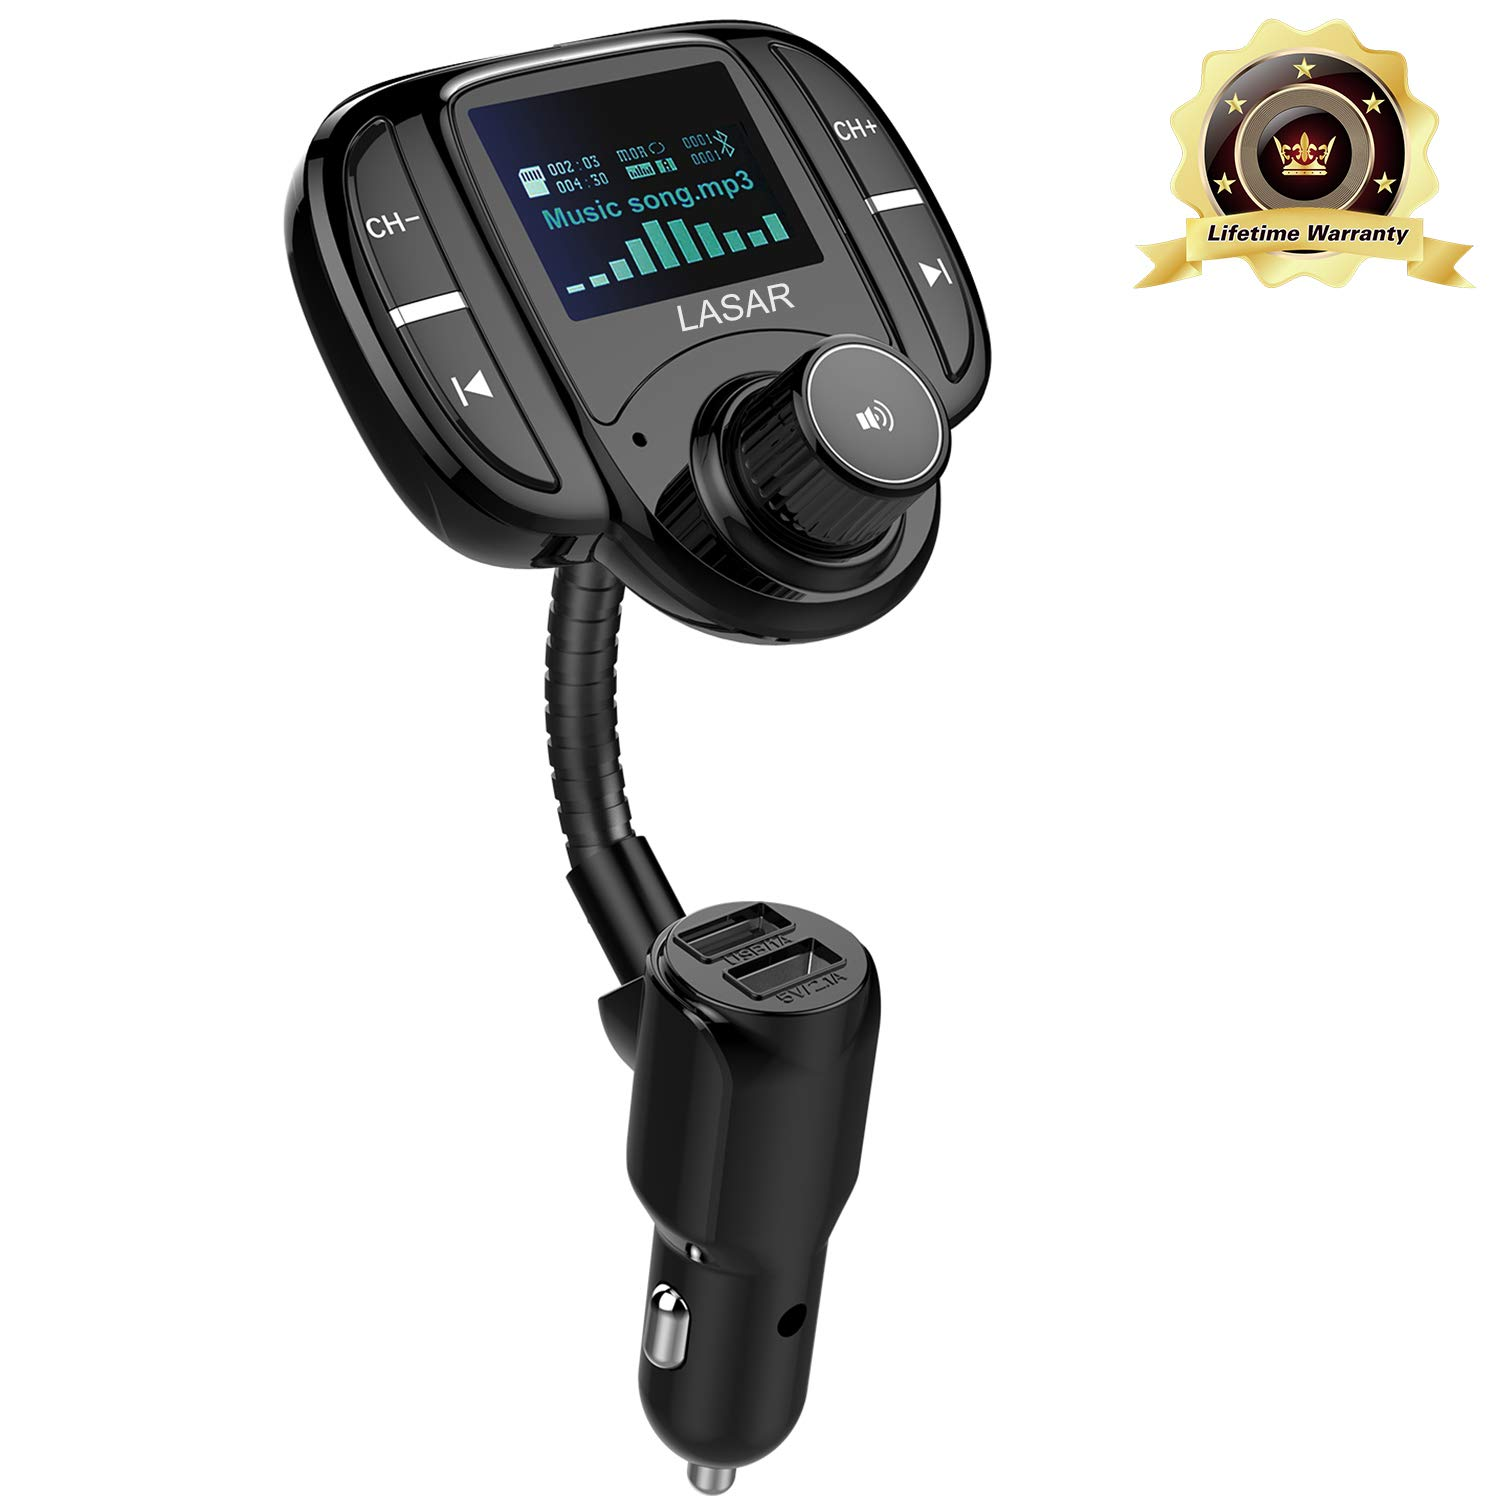 """LASAR Bluetooth FM Transmitter,Wireless Radio Adapter Hands-Free Calling Car Kit QC3.0 and Smart Dual USB Port W 1.7"""" Display, Support USB Drive,AUX Input/Output, TF Card MP3 Player"""